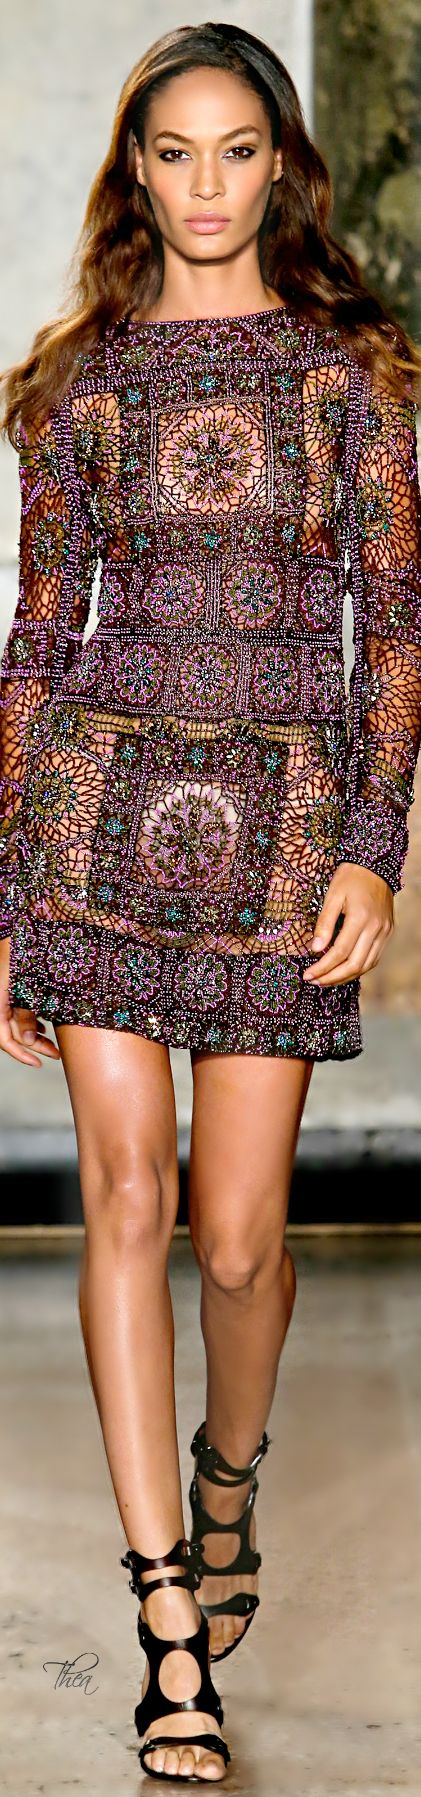 Emilio Pucci ● SS 2015 oh i like this dress a lot